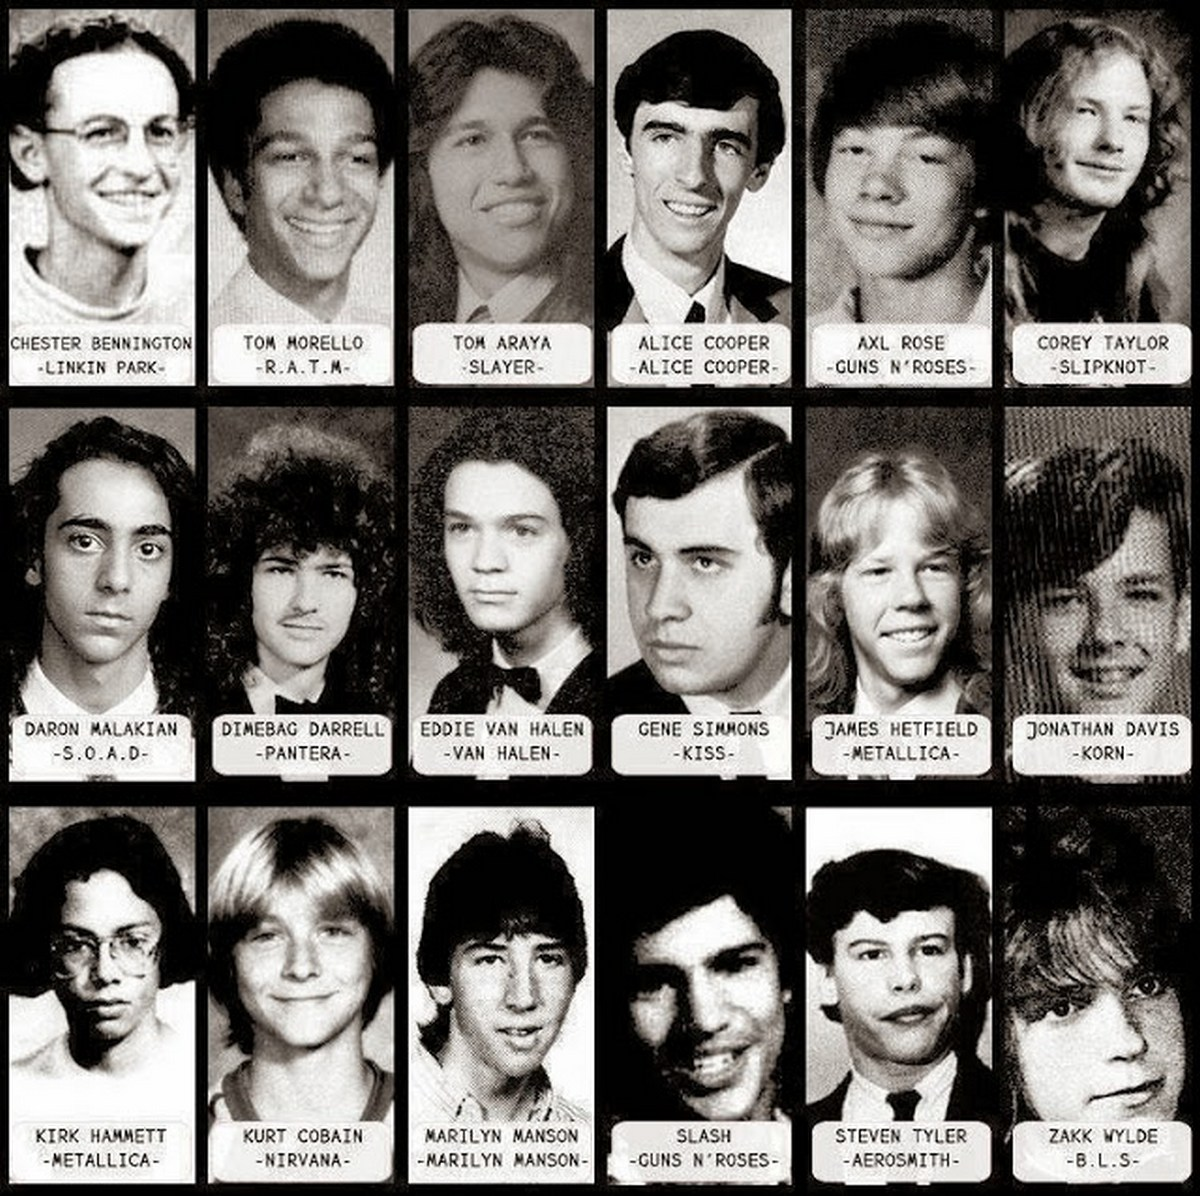 yearbook_photos_of_rock_and_heavy_metal_icons.jpg